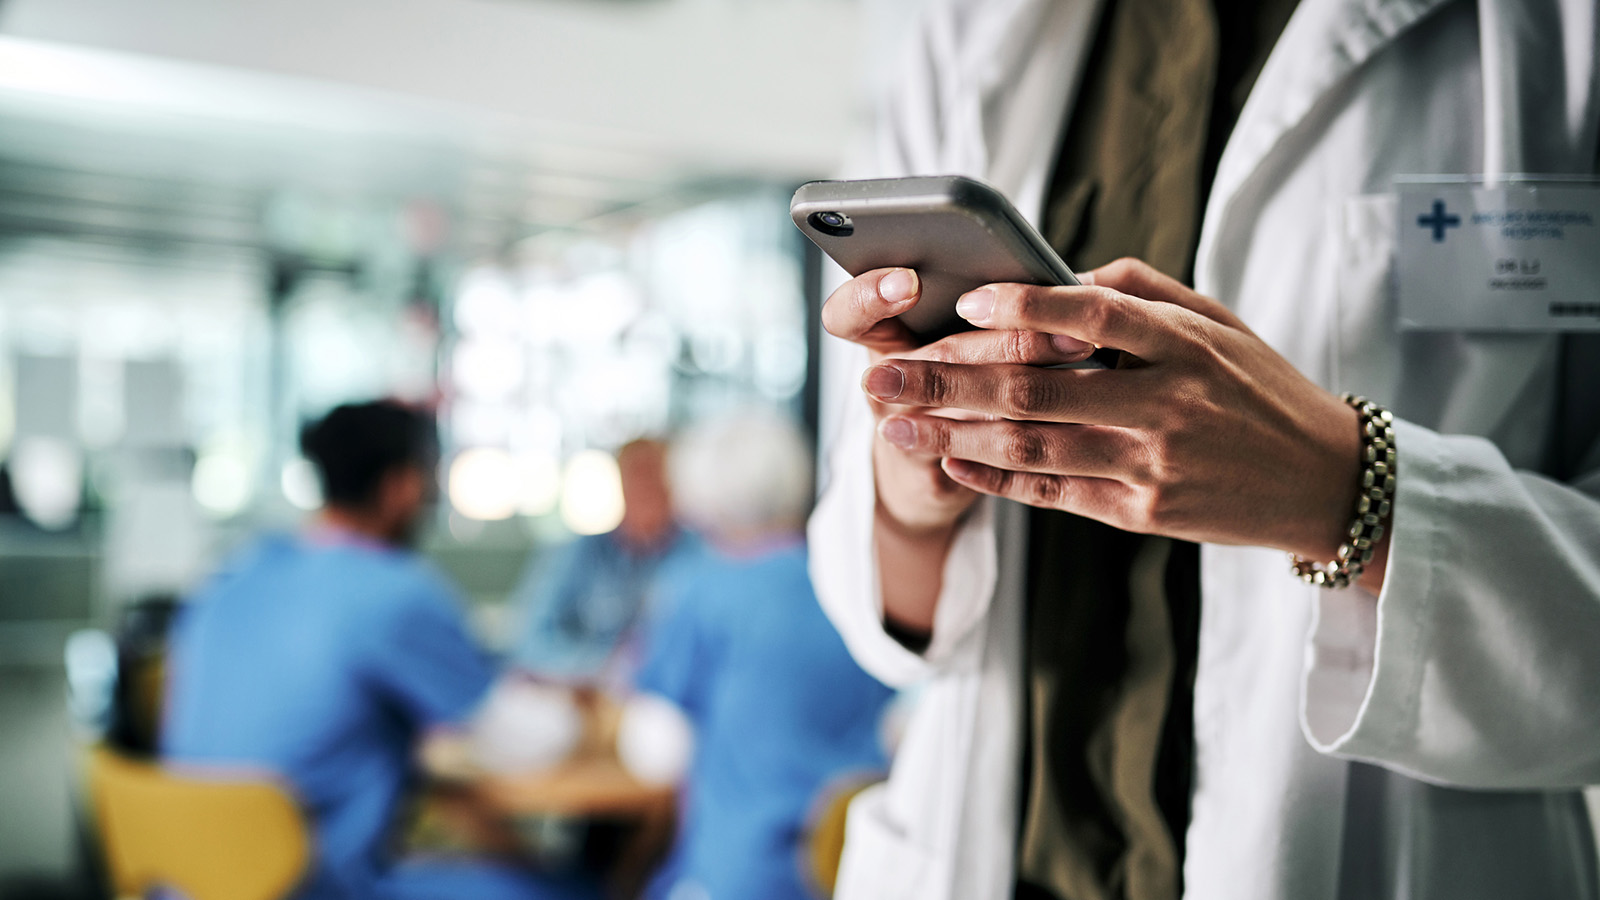 Cropped shot of an unrecognizable female doctor using a smartphone in a hospital with her colleagues in the background